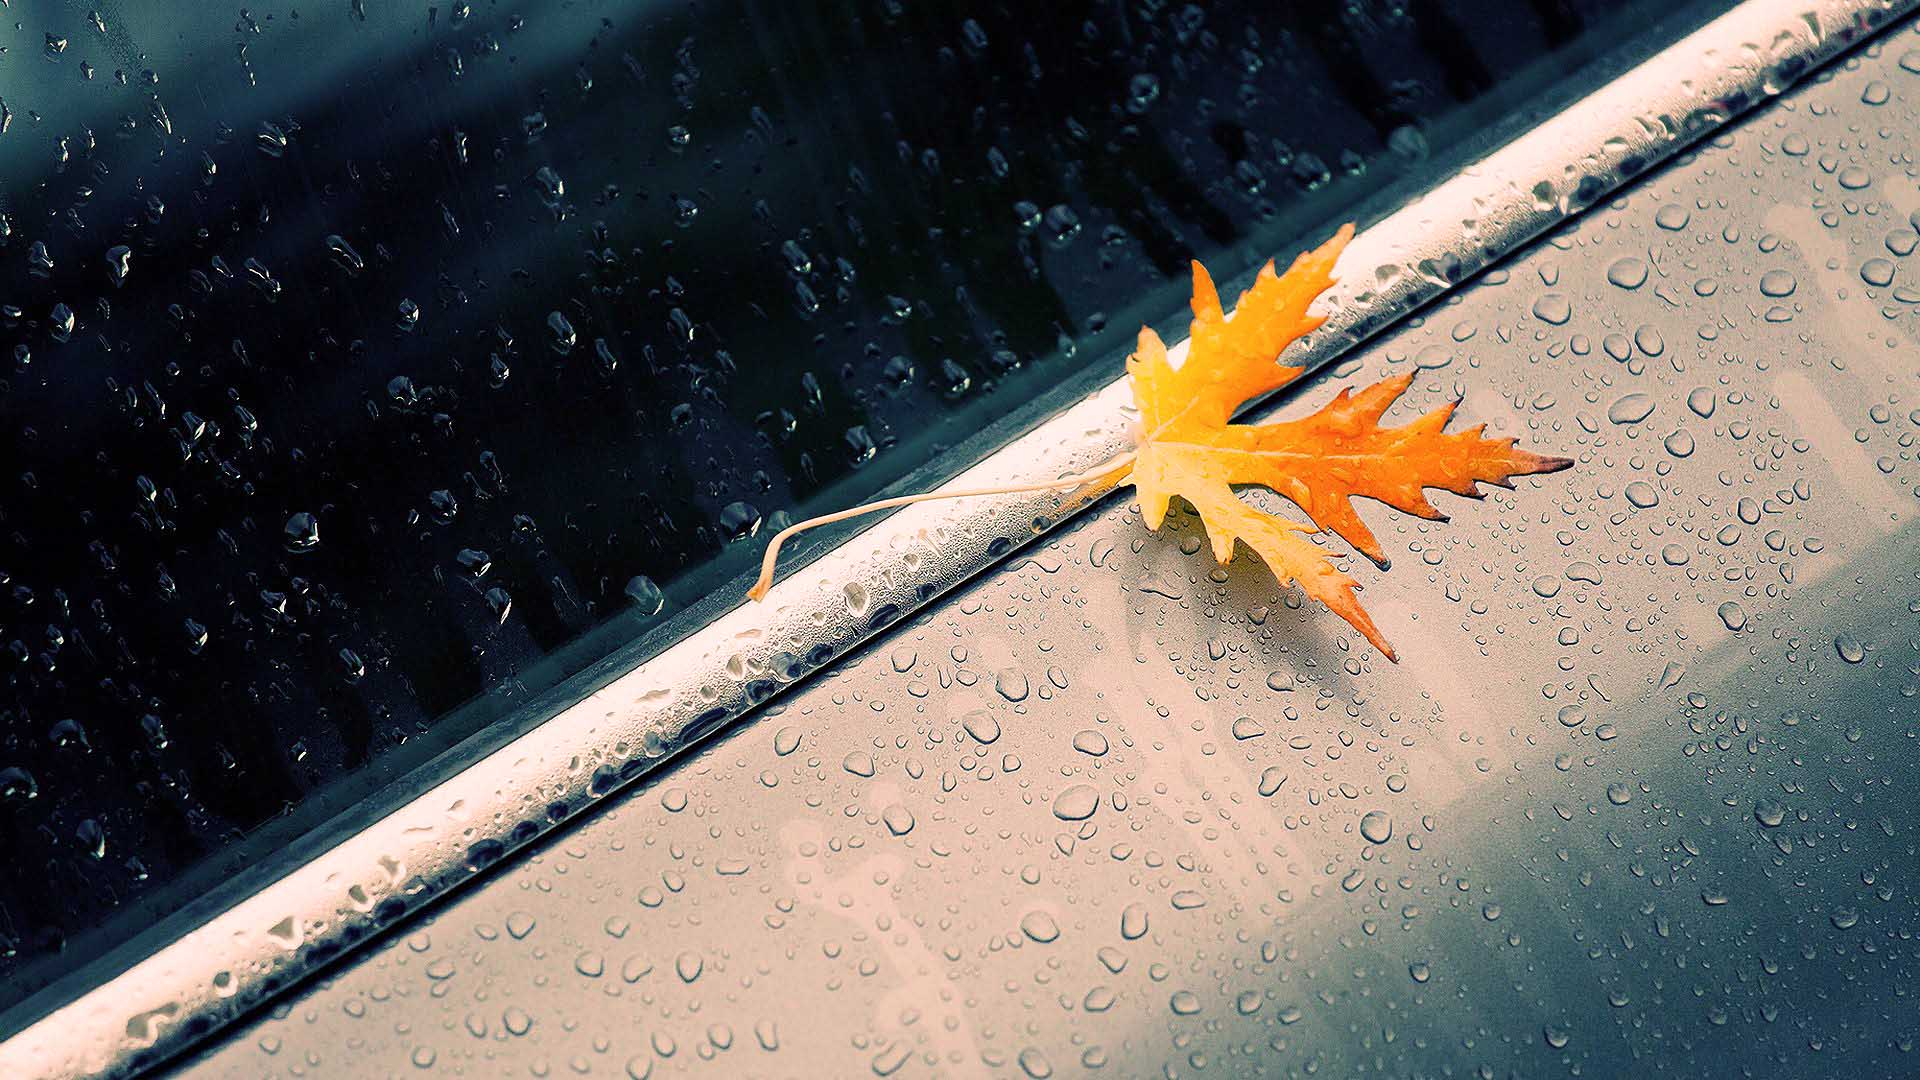 Rain Photos Wallpaper High Definition High Quality